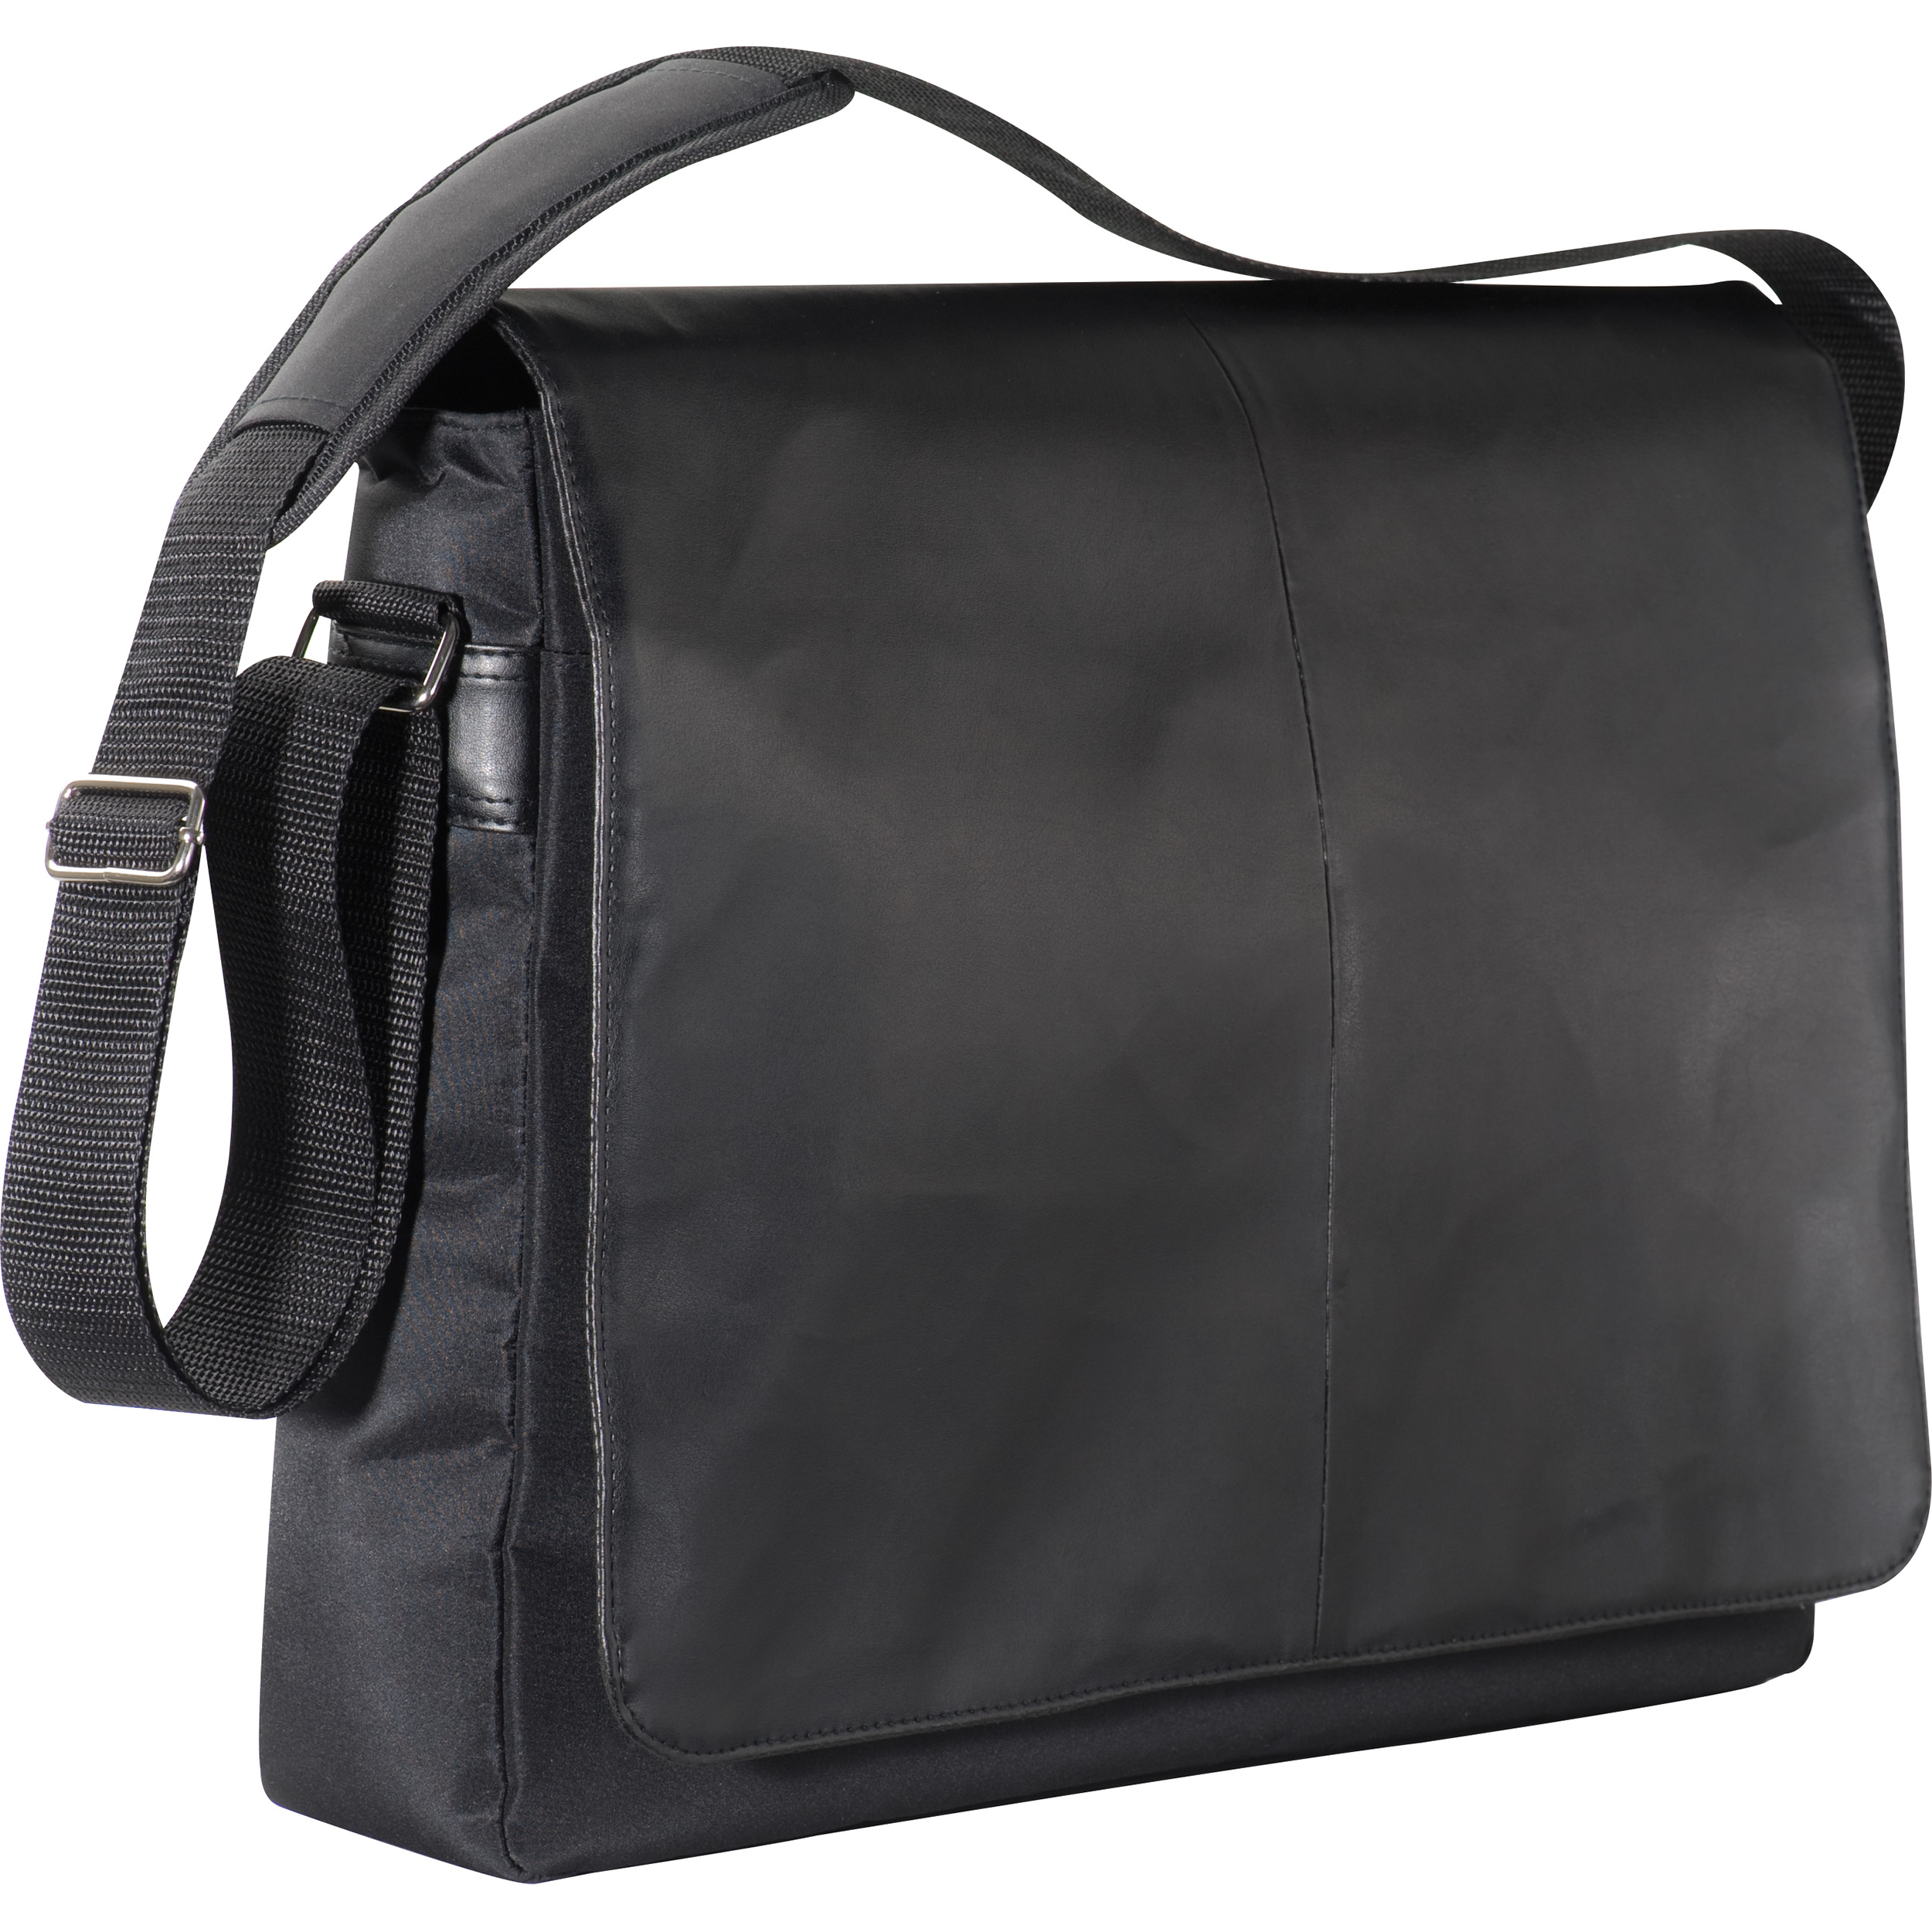 Laptop bag with<br>black PVC rollover